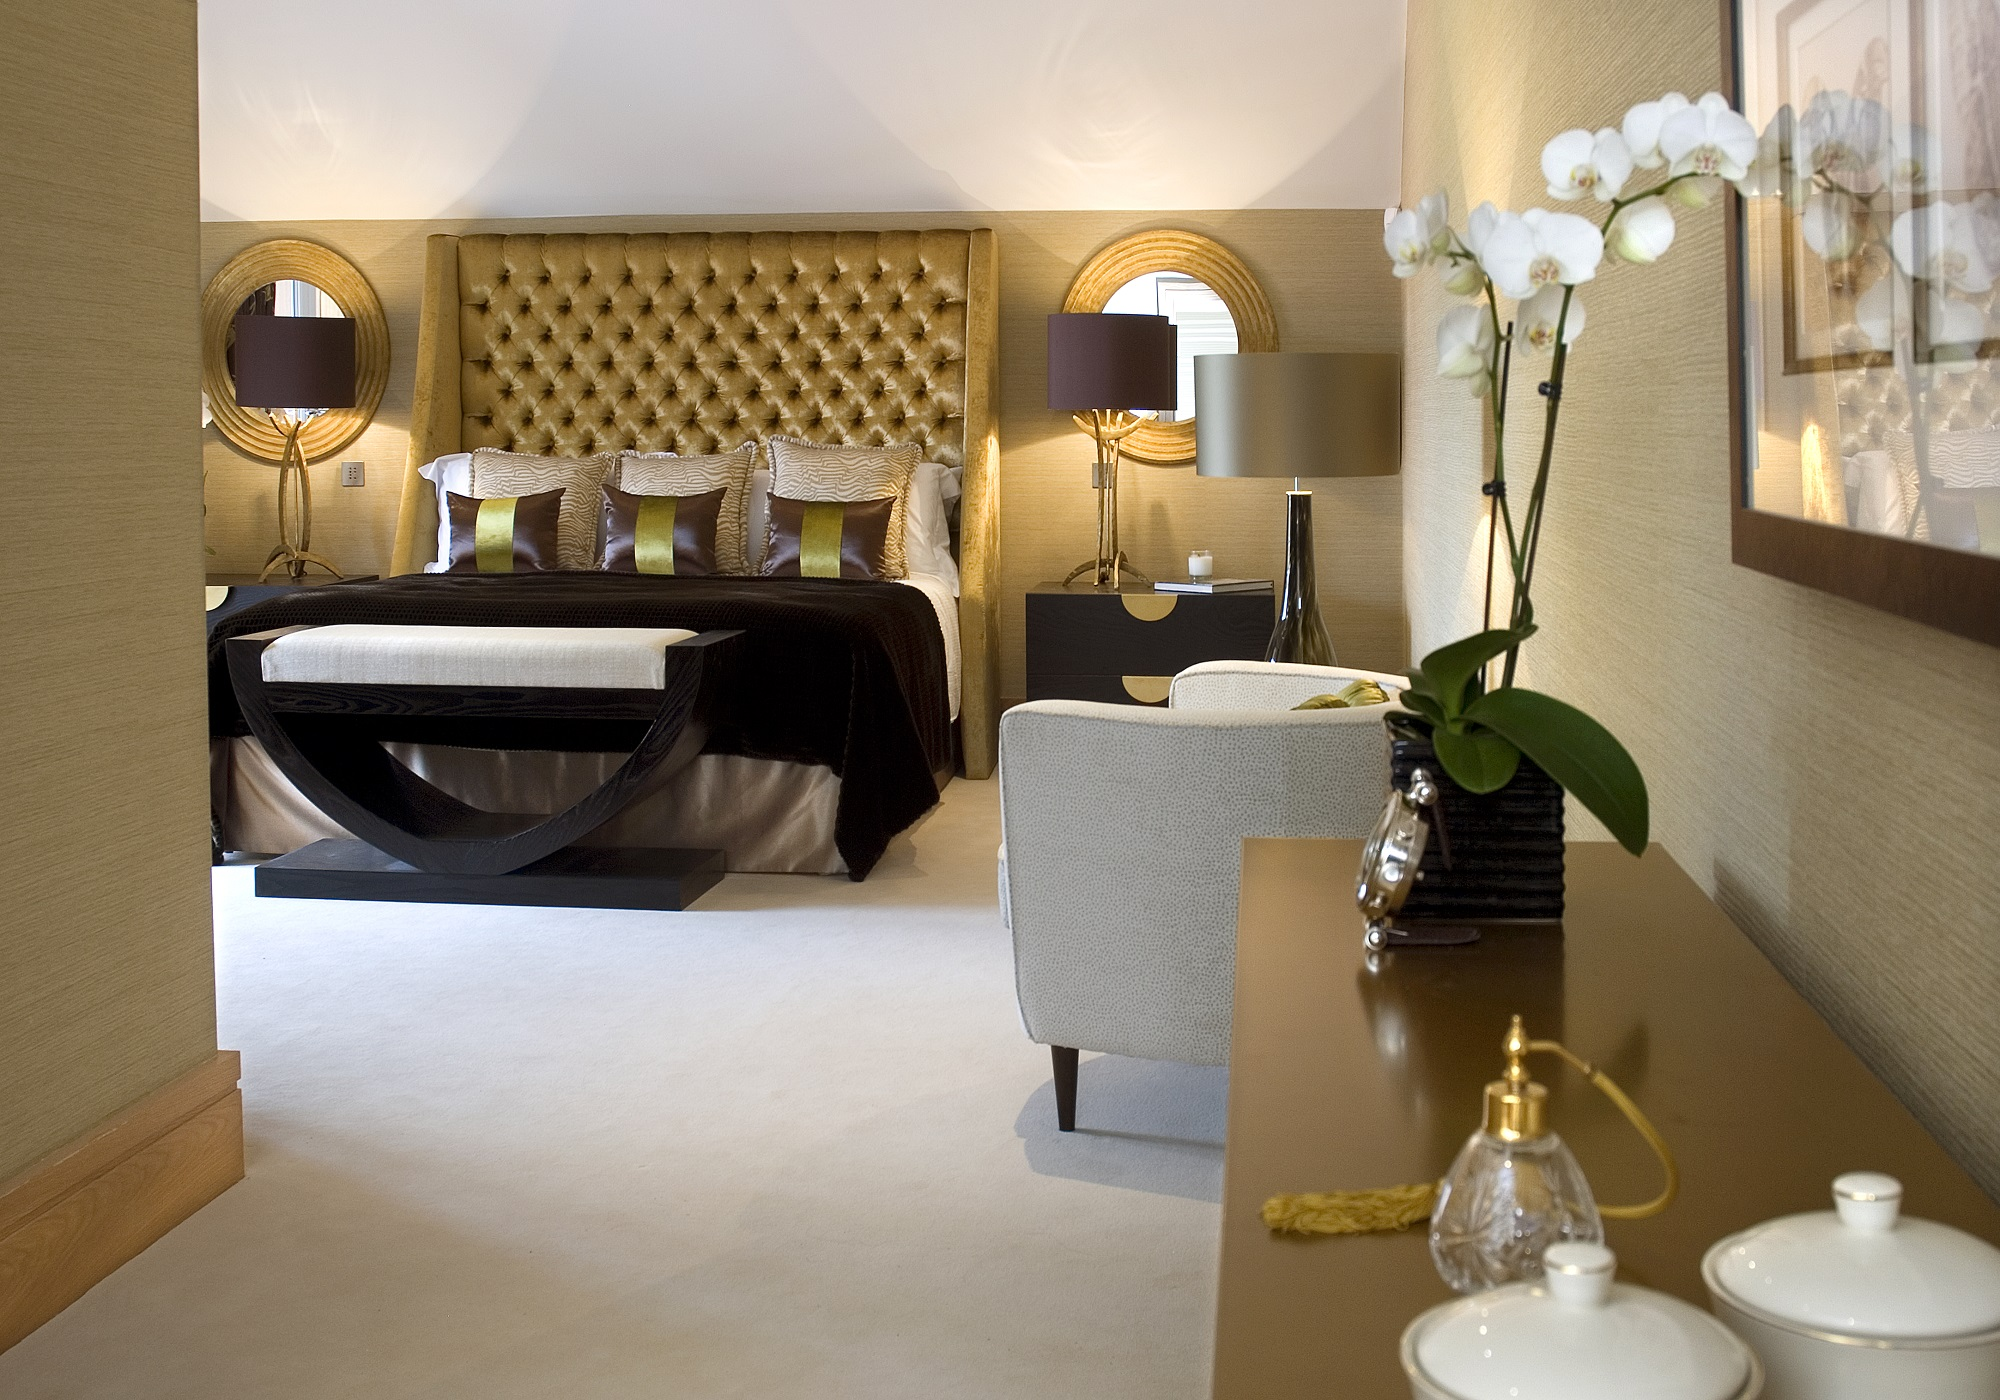 zen interior design on a bud interior design services on a budget Amersham-Designs-Glam-Bedroom-Decorating-Ideas